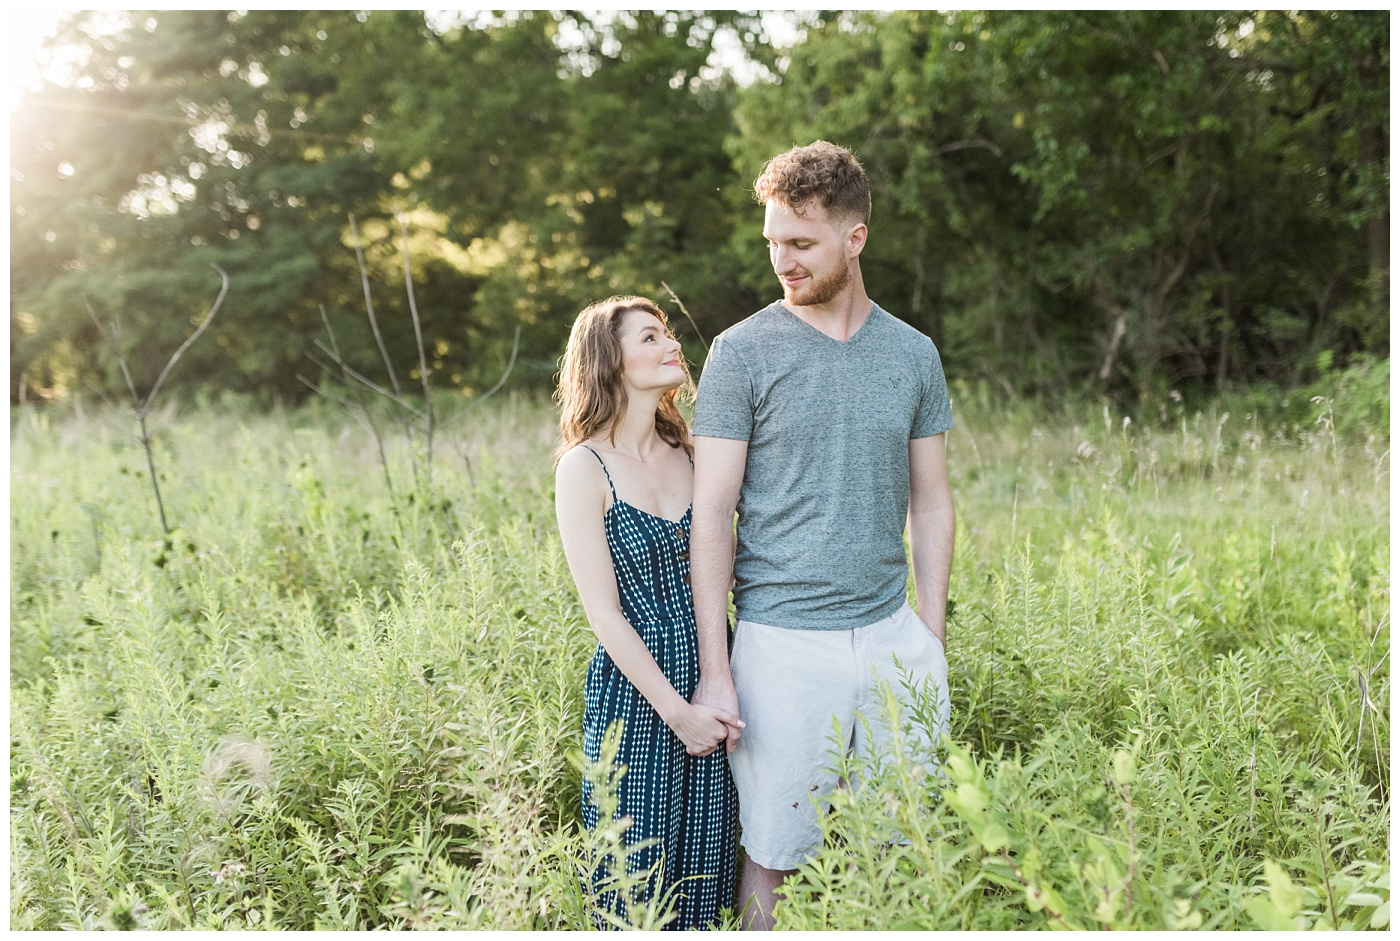 Stephanie Marie Photography Labor for Love Downtown North Liberty Engagement Session Iowa City Wedding Photographer Devin Cody_0018.jpg